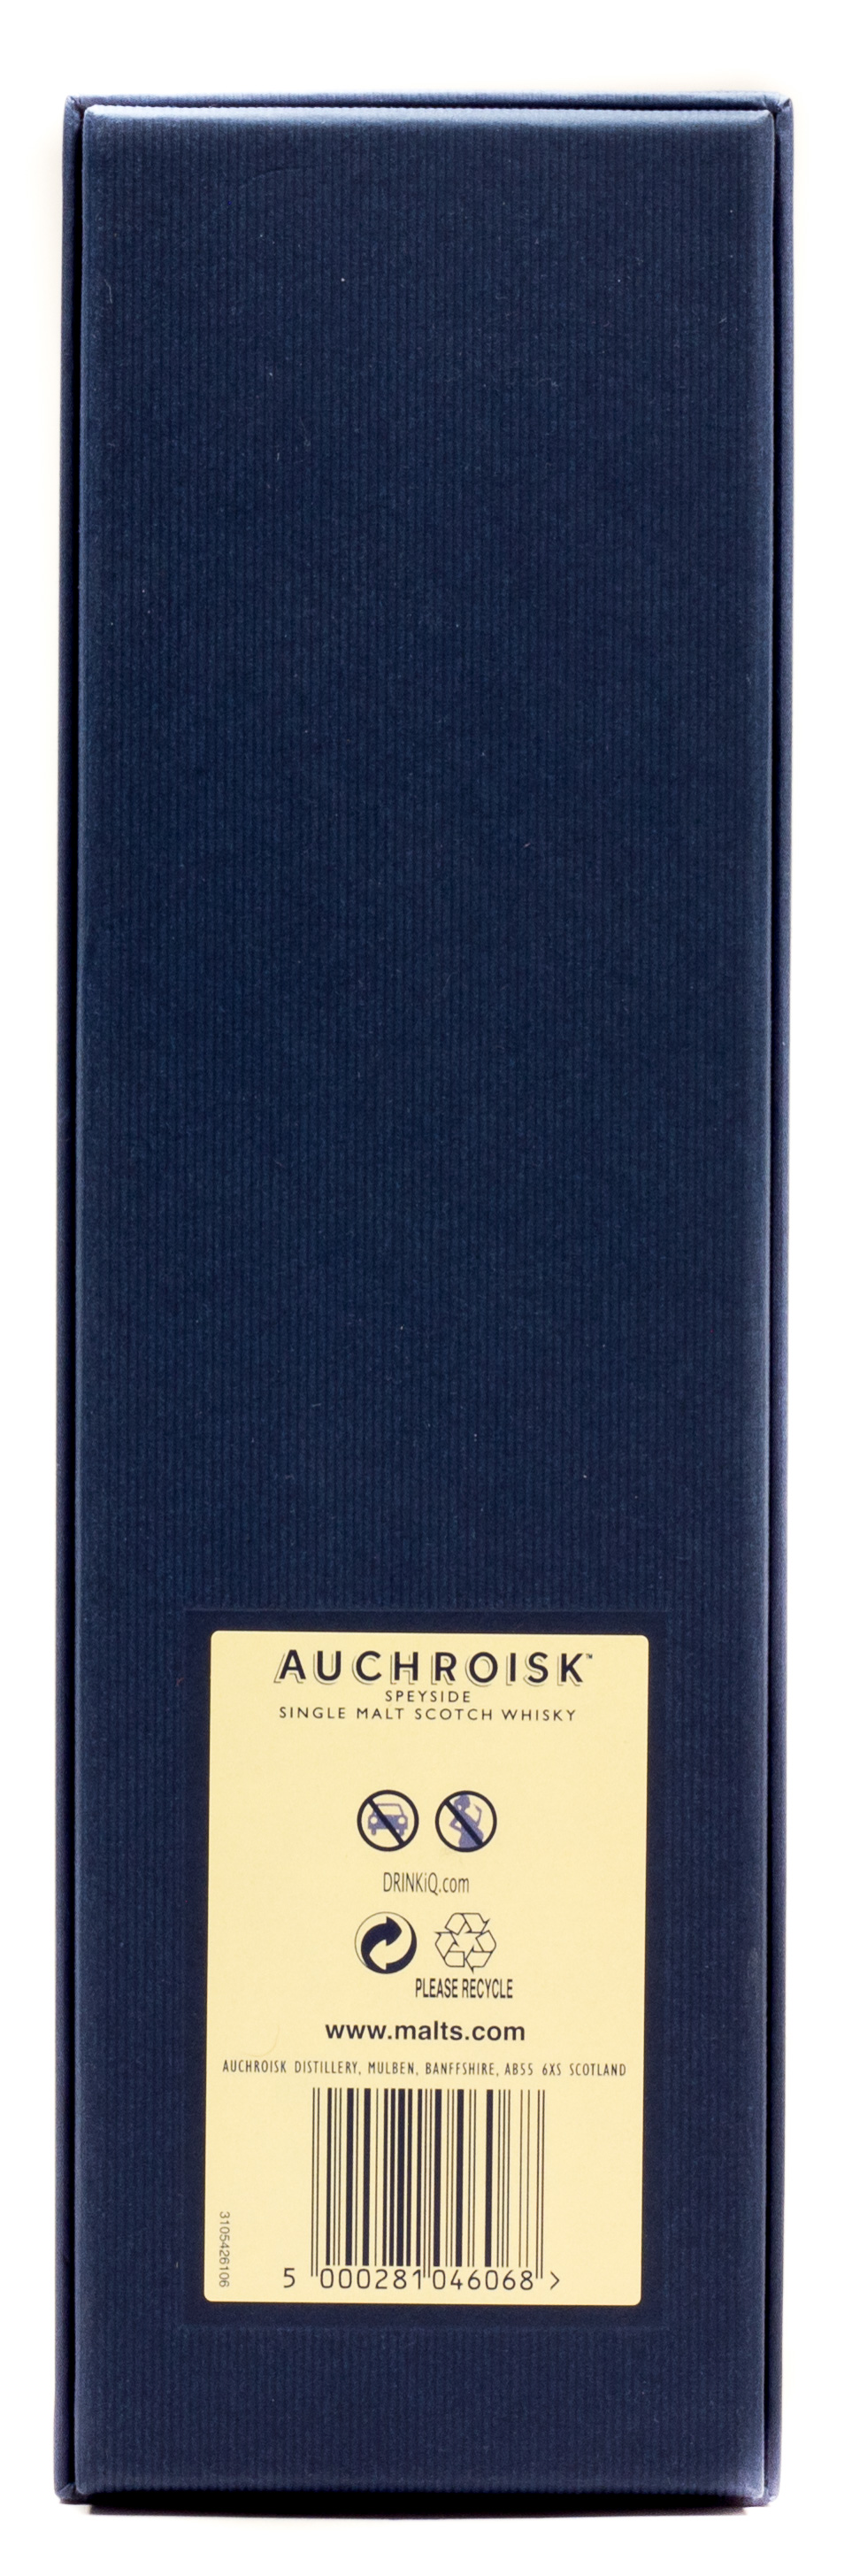 Auchroisk Speyside Single Malt Scotch Whisky Natural Cask Strength 25 years 0,7 l